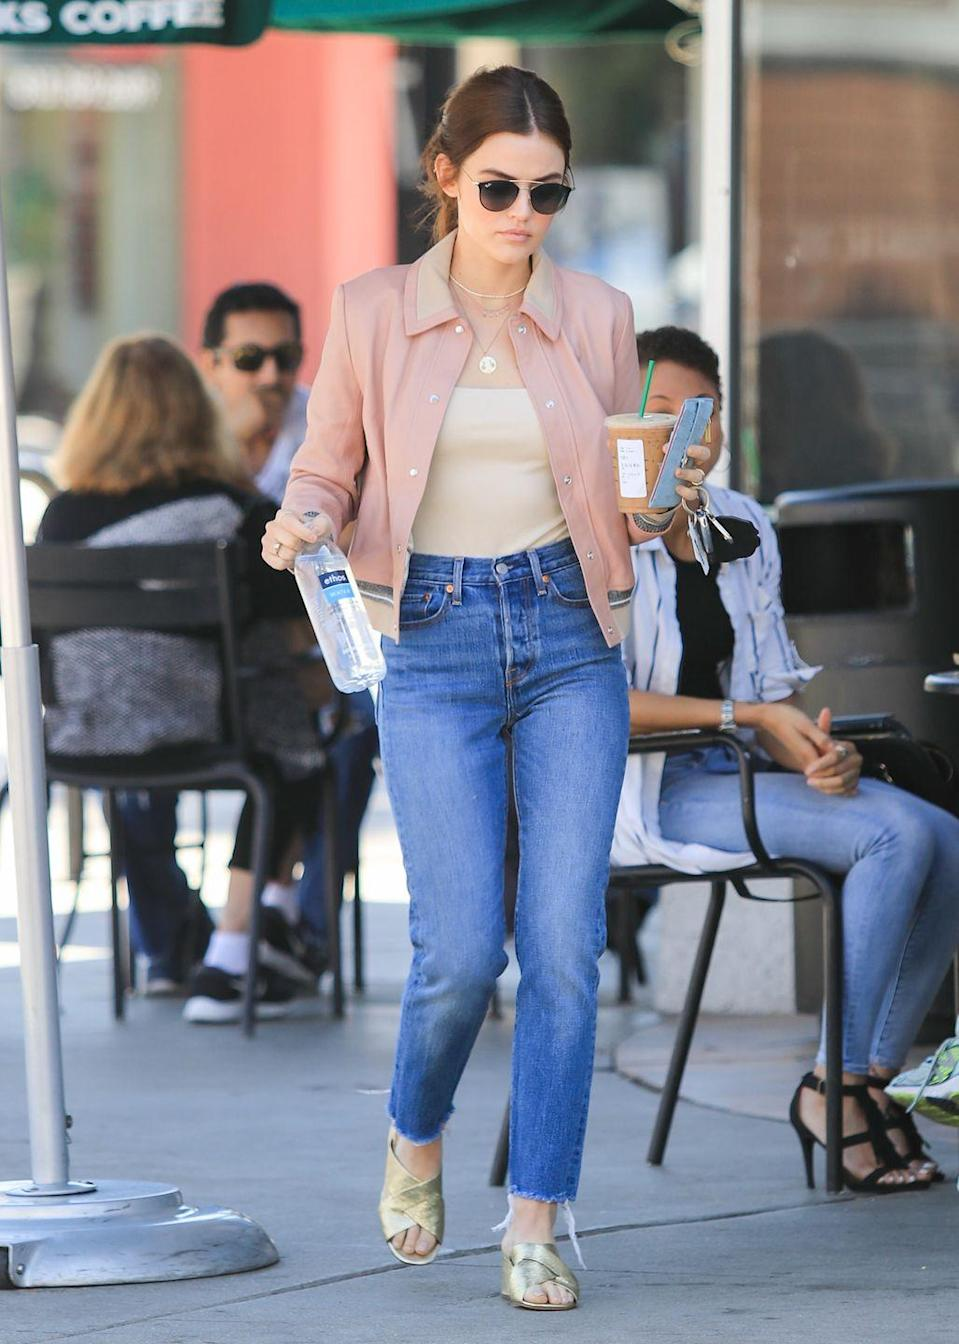 """<p>Stop what you're doing! If you don't already own a blush jacket, click out of this article and buy one ASAP, because with this chic topper, you'll never be underdressed. Pair it up with medium-wash denim and shades of gold to take your fit a little more on the dressy side. </p><p>What you'll need: <em>Padded</em><em> Bomber Jacket, $35, H&M</em></p><p><a class=""""link rapid-noclick-resp"""" href=""""https://go.redirectingat.com?id=74968X1596630&url=https%3A%2F%2Fwww2.hm.com%2Fen_us%2Fproductpage.0868038002.html&sref=https%3A%2F%2Fwww.seventeen.com%2Ffashion%2Fstyle-advice%2Fg25727522%2Fcasual-outfits%2F"""" rel=""""nofollow noopener"""" target=""""_blank"""" data-ylk=""""slk:SHOP HERE"""">SHOP HERE</a></p>"""